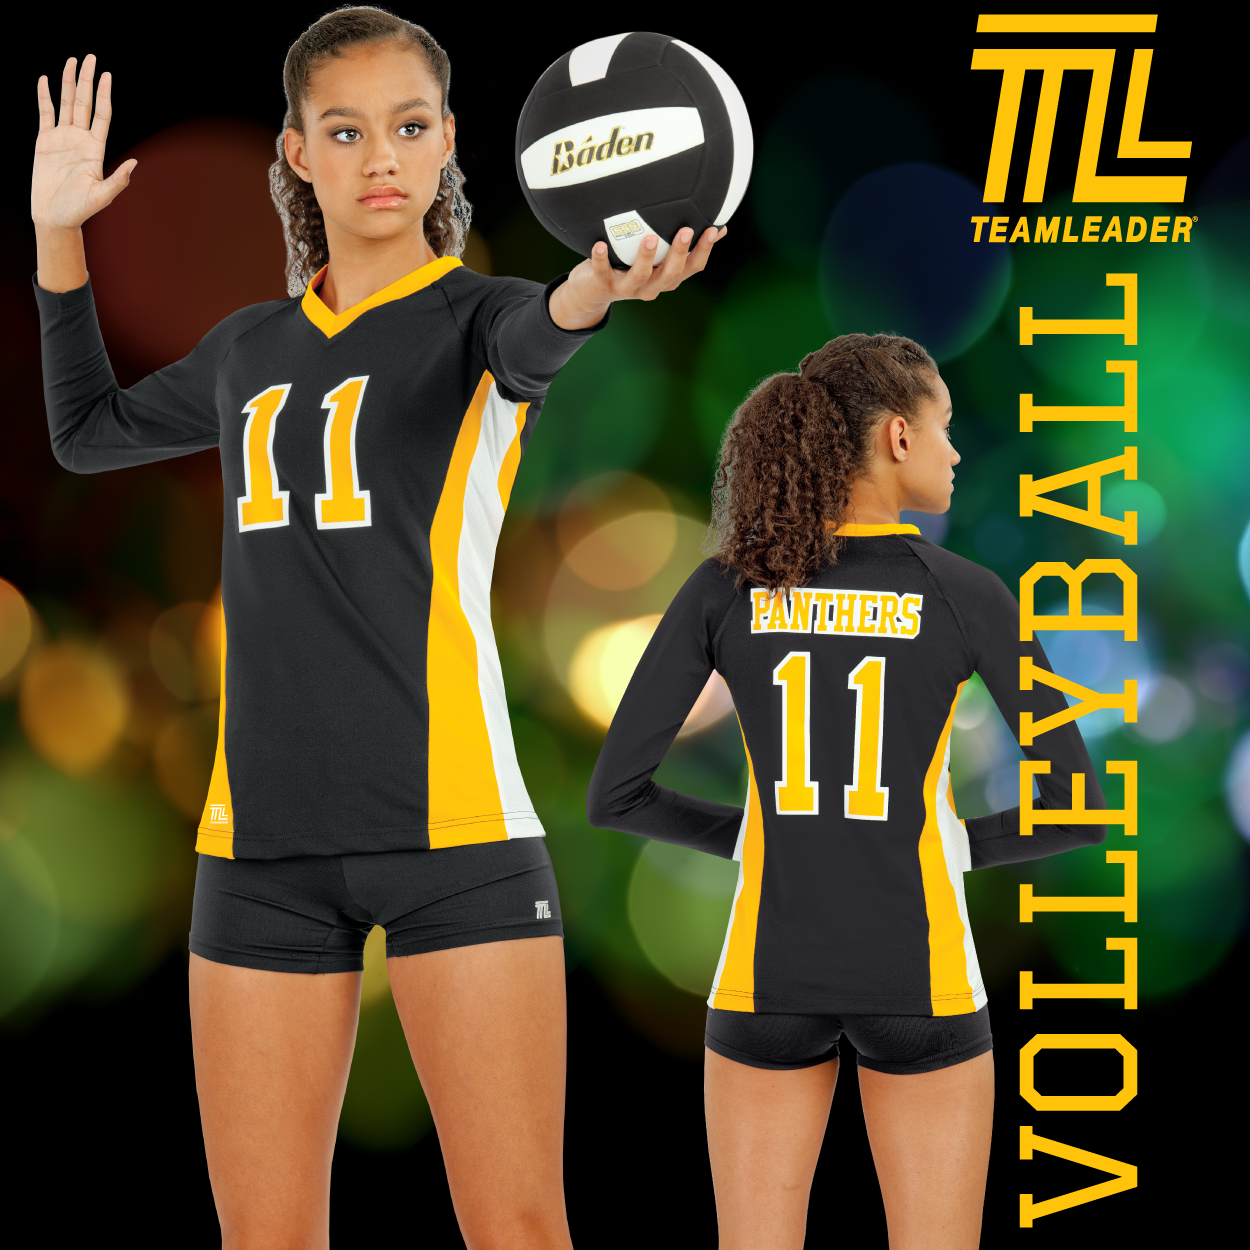 Our Family Owned Company Guarantees Genuine Products Proudly Made In The Usa Winning Starts With A Team A Tea Volleyball Outfits Volleyball Shirts Volleyball